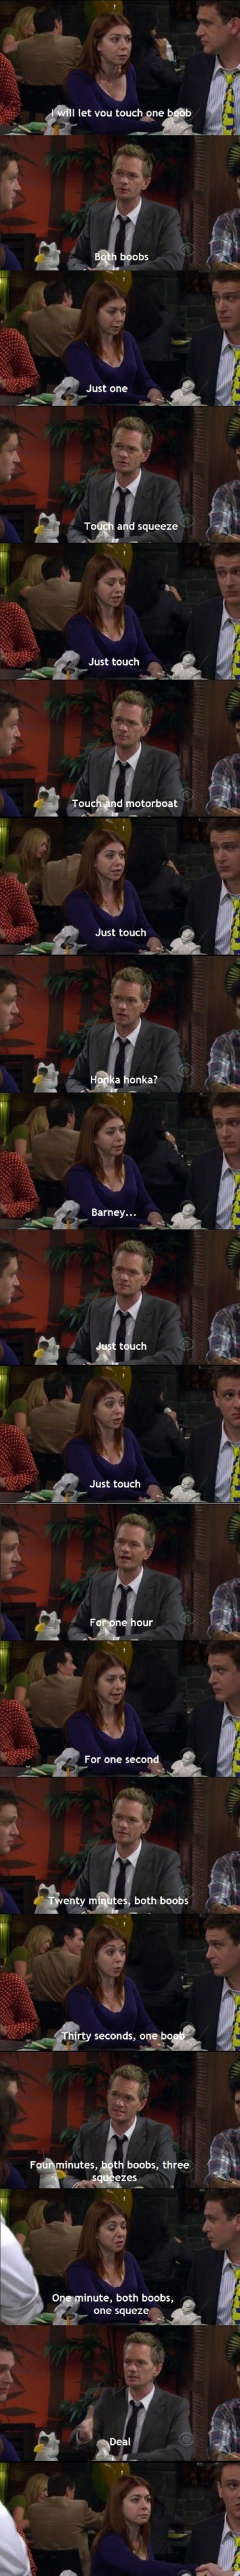 barney dialogues